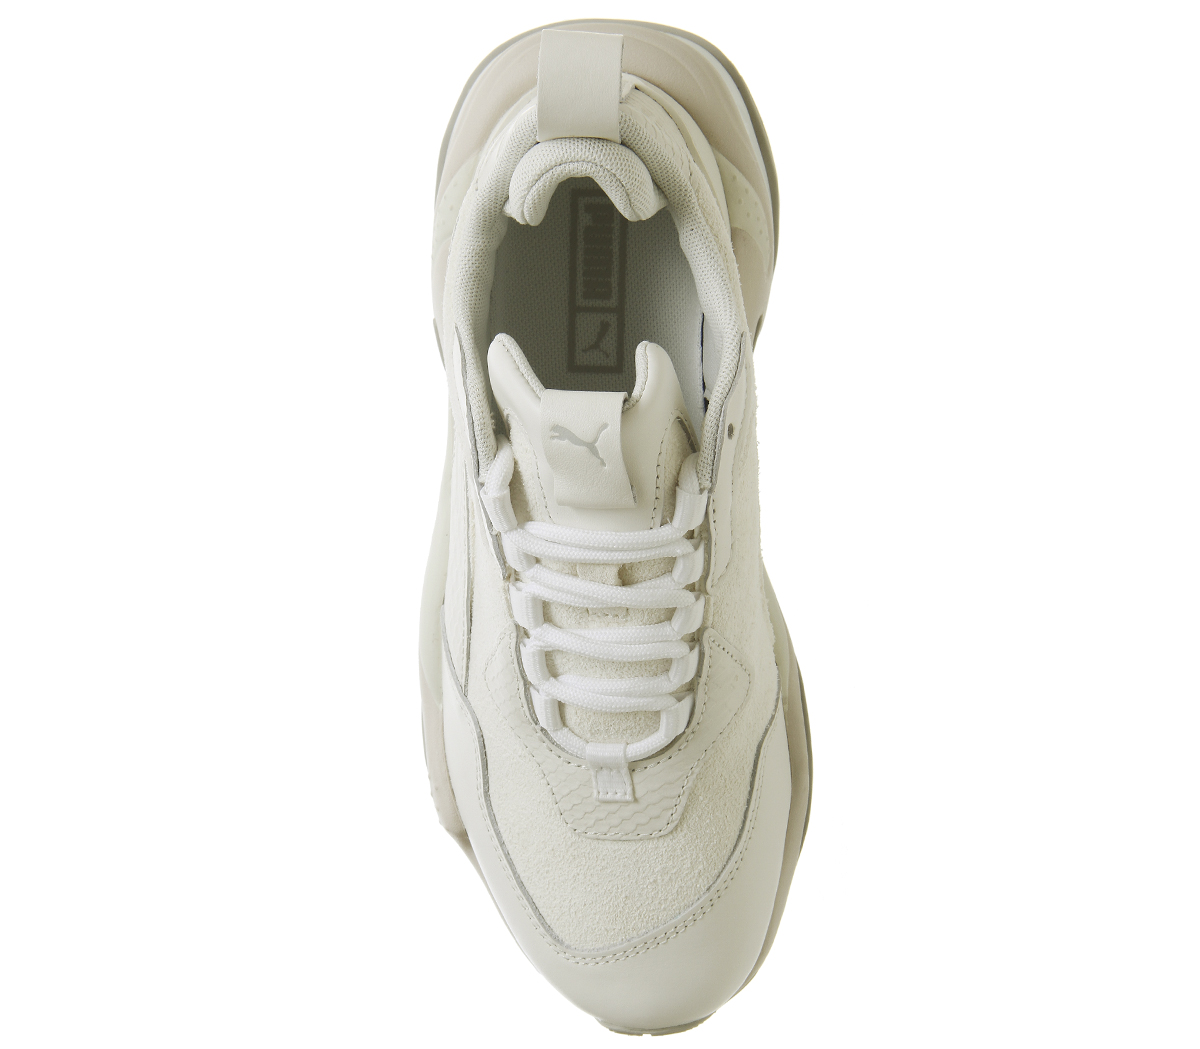 b63e9b52c1c950 Puma Thunder Desert Trainers Bright White Star Grey Violet Trainers ...